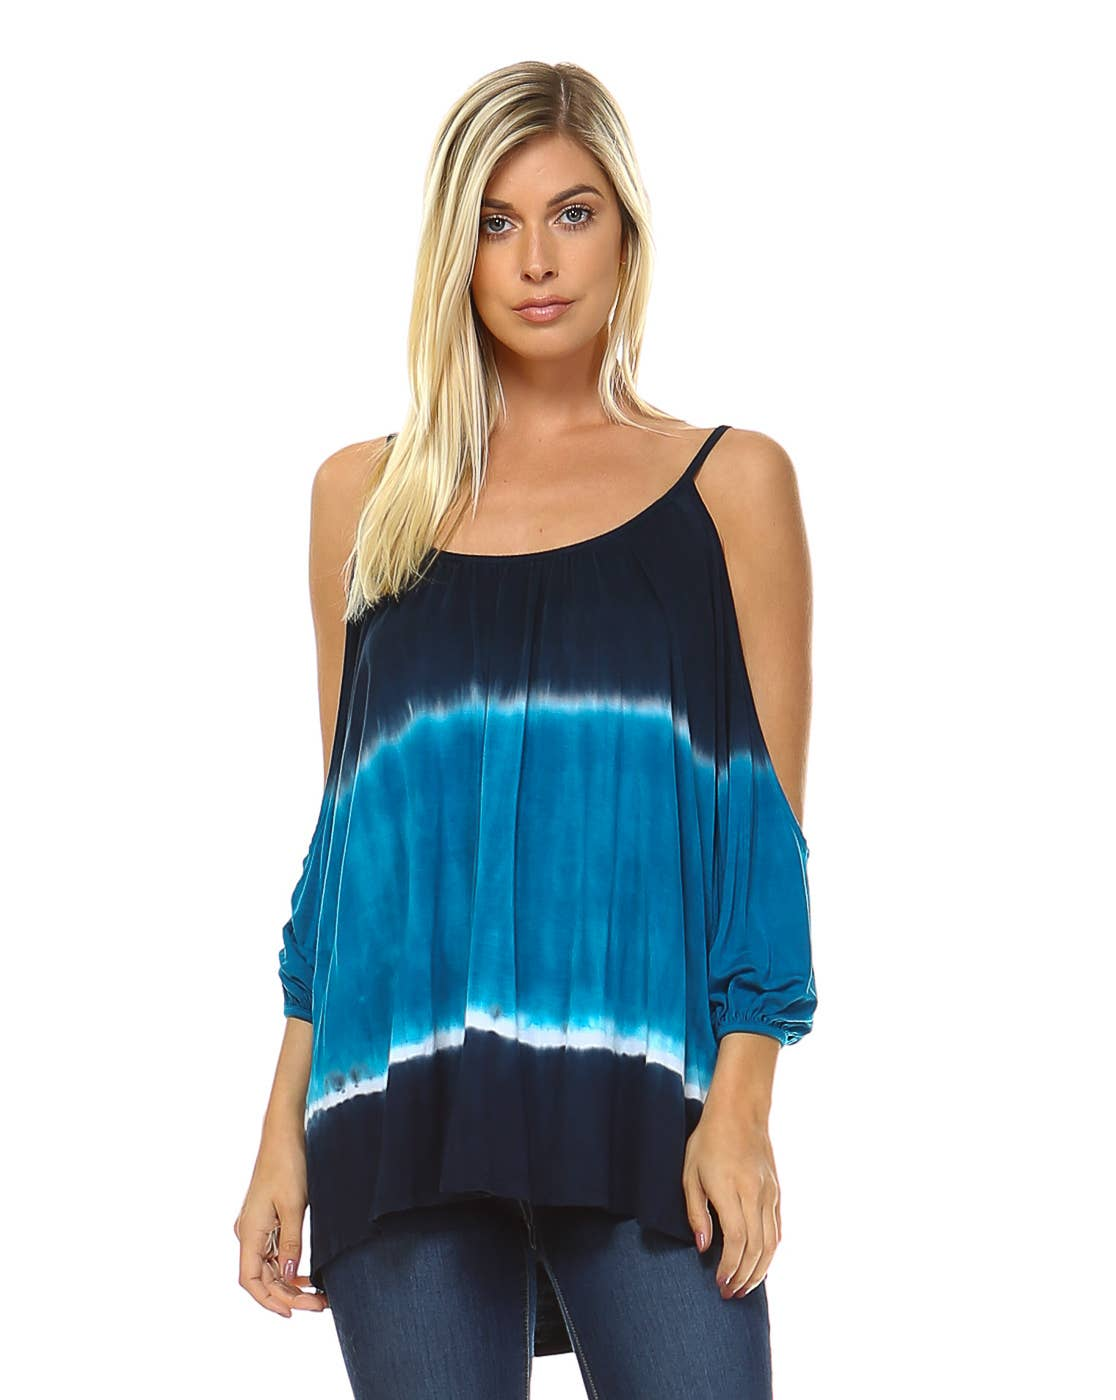 Urban X Apparel - Navy & Turquoise Two tone Ombre Hi low Cold shoulder top